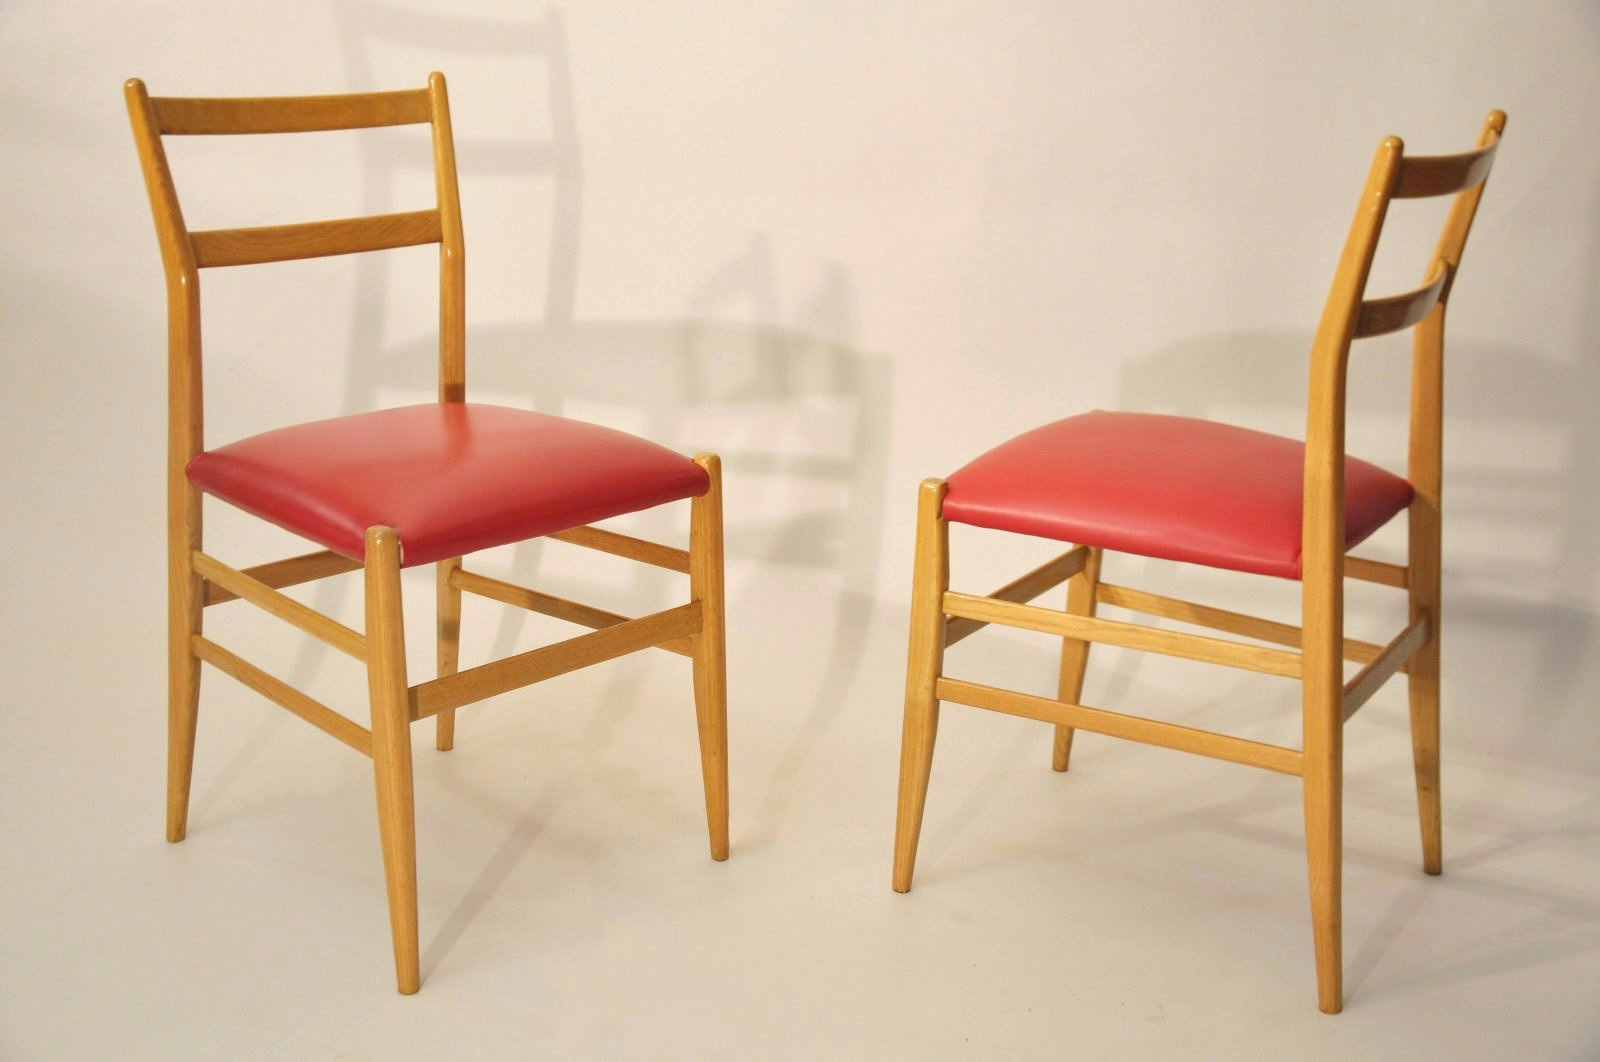 Side Chairs By Gio Ponti For Cassina, 1950s, Set Of 2